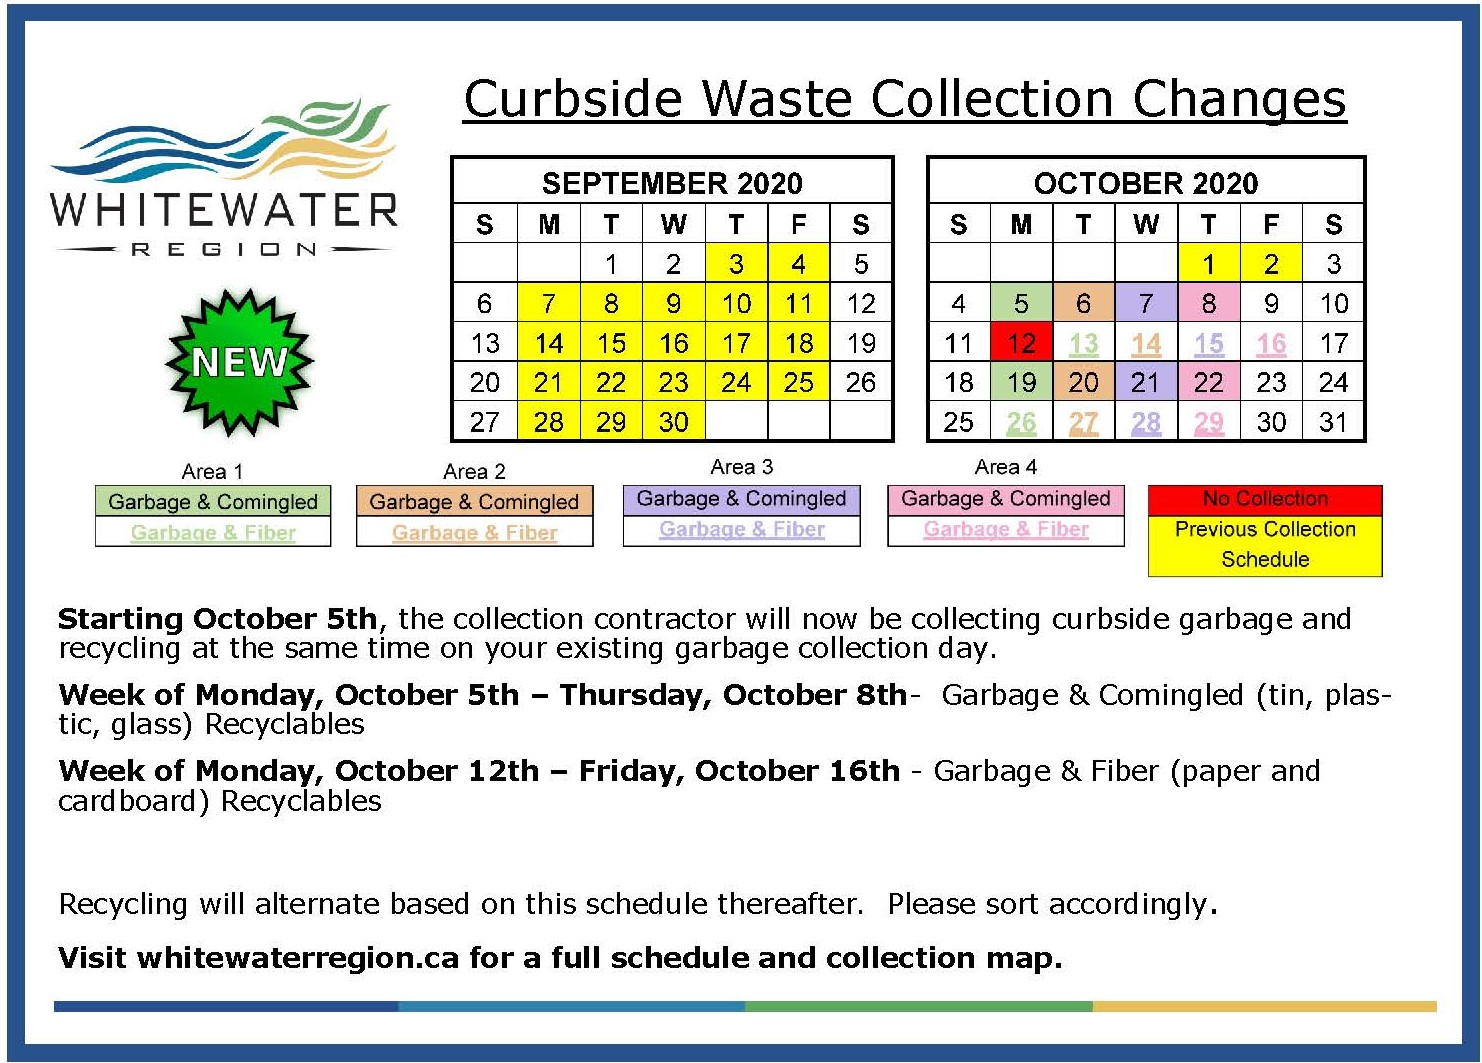 Curbside Collection Changes